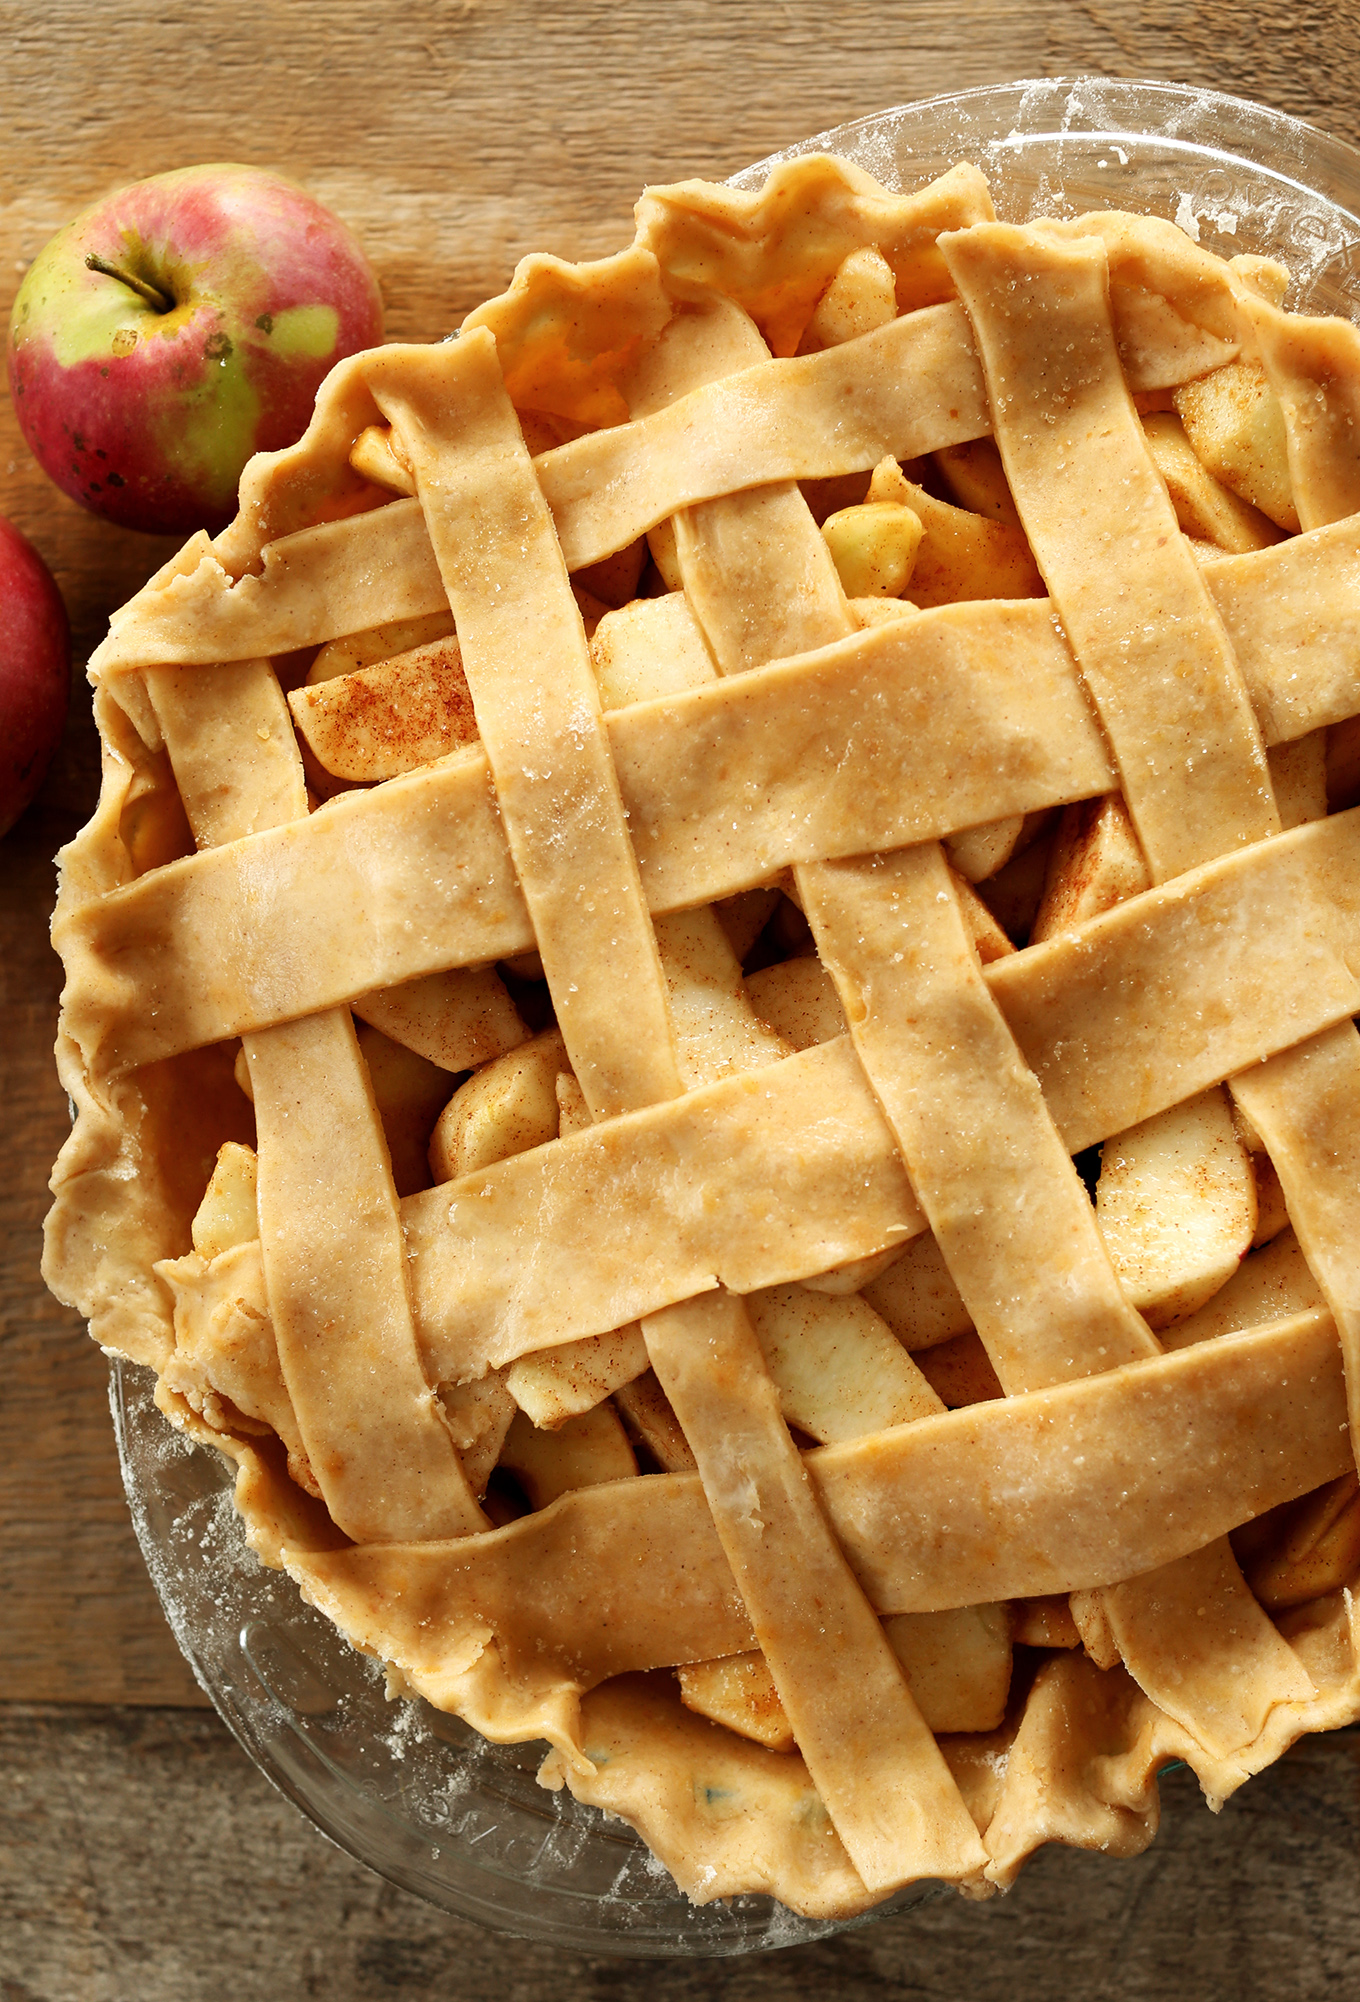 Delicious vegan Pumpkin Spiced Apple Pie with a lattice top